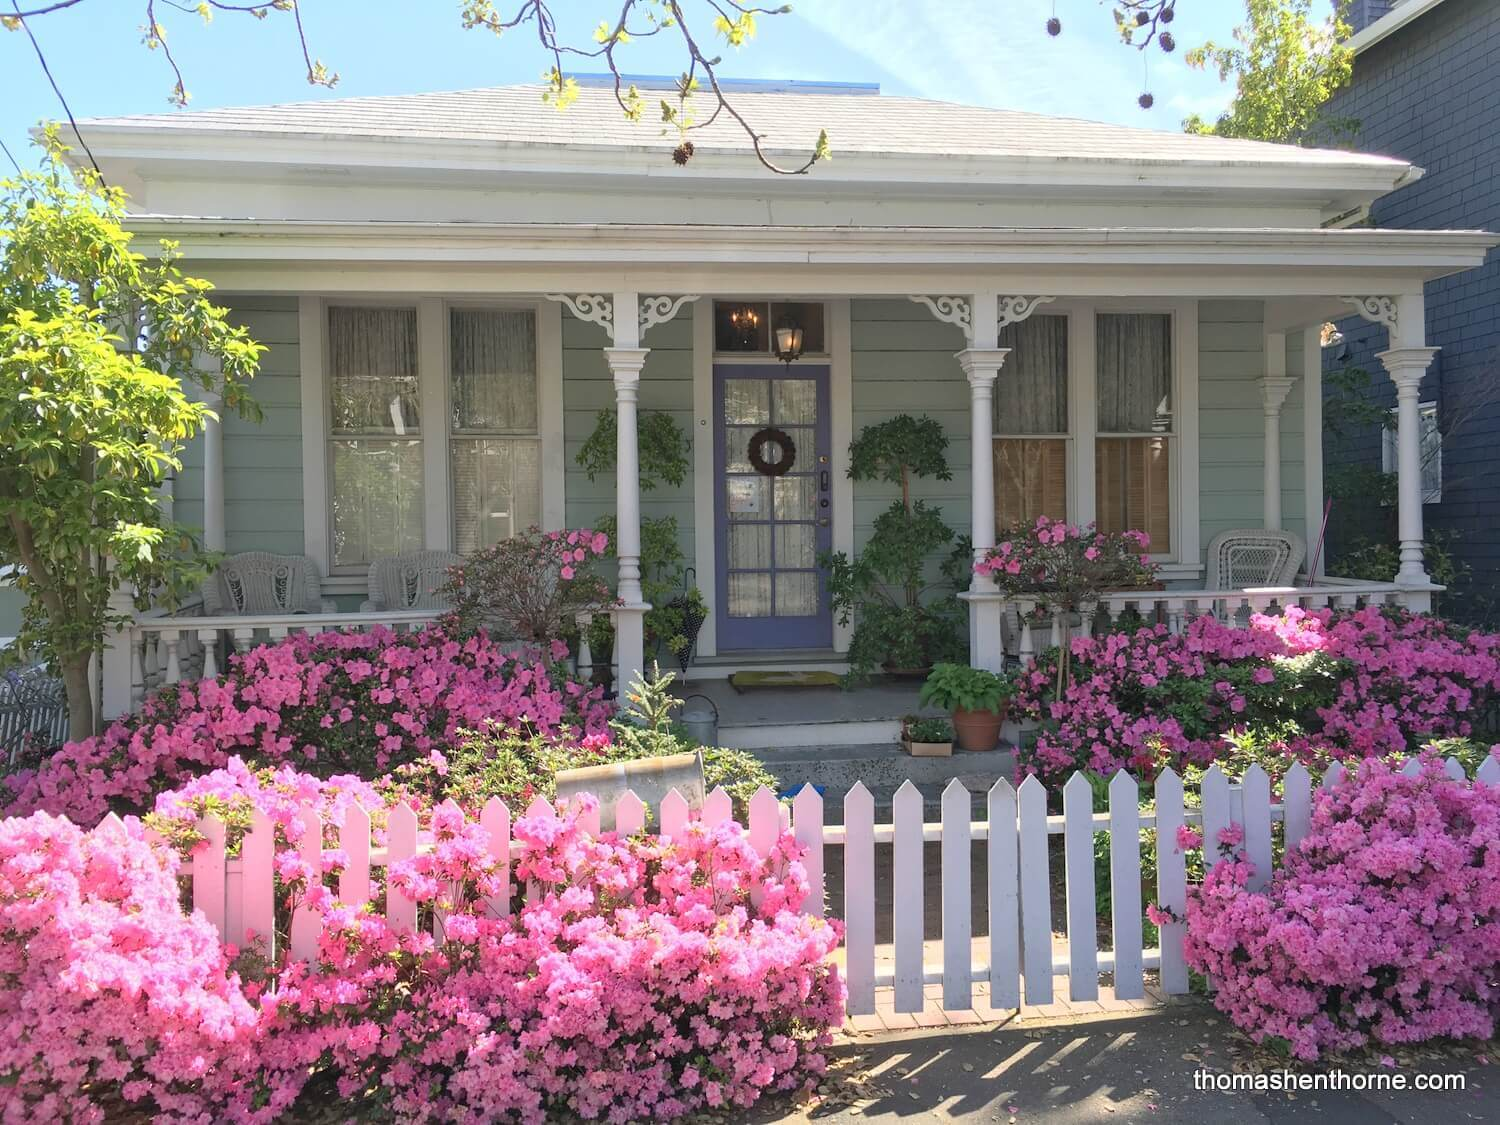 azaleas and white picket fence photo of home